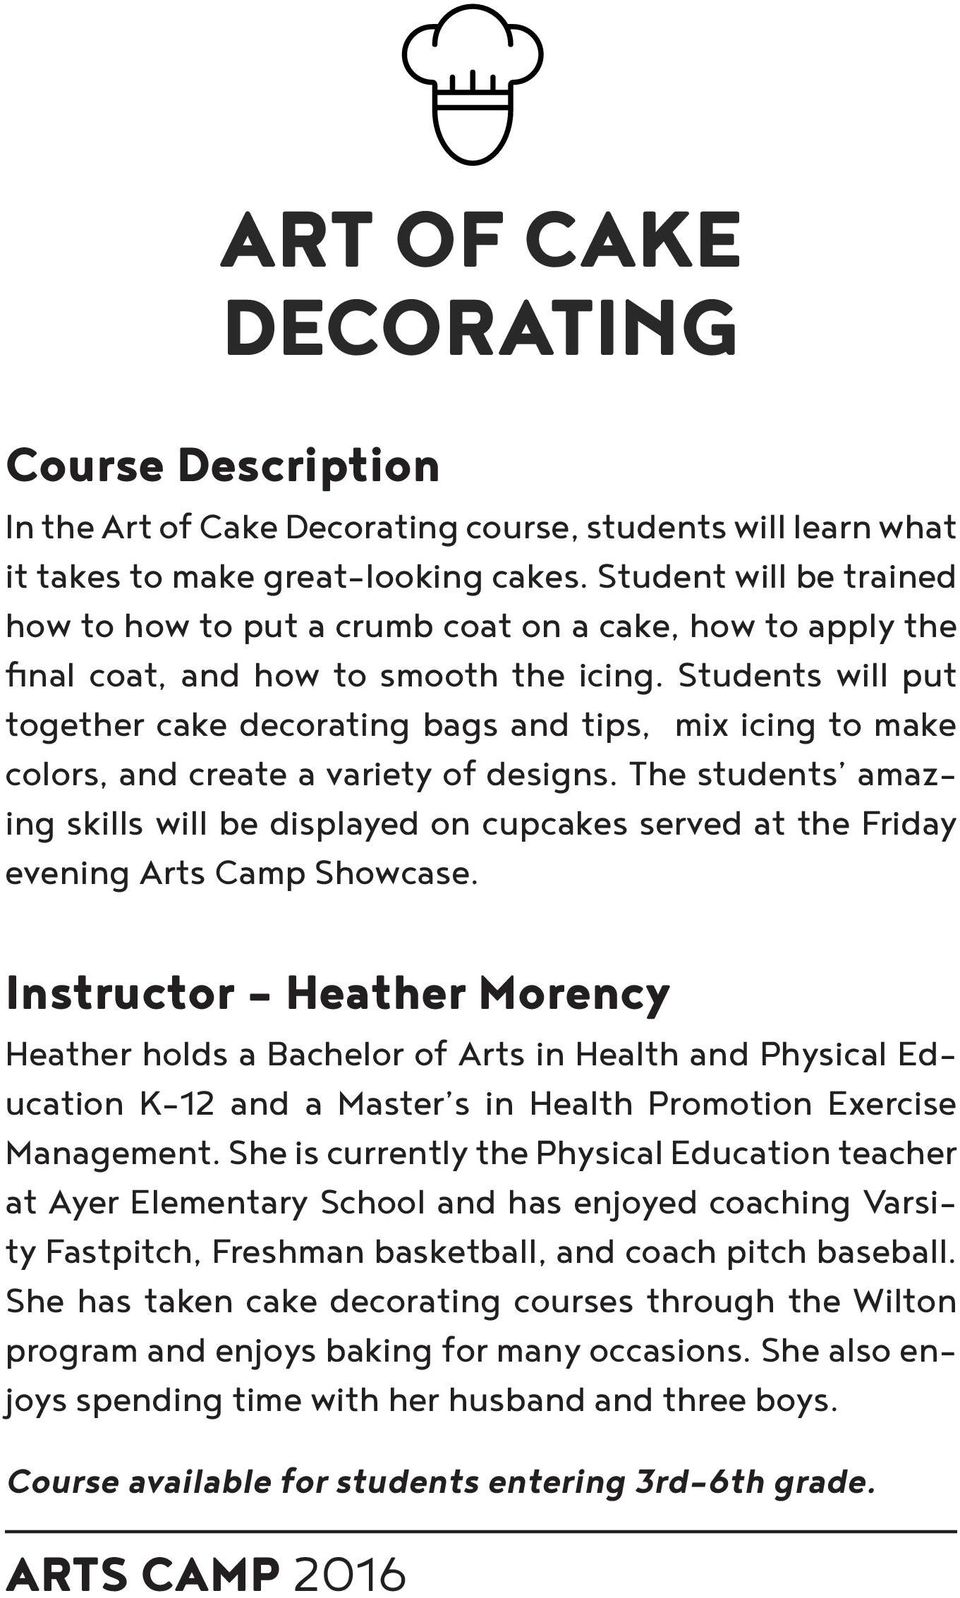 Students will put together cake decorating bags and tips, mix icing to make colors, and create a variety of designs.